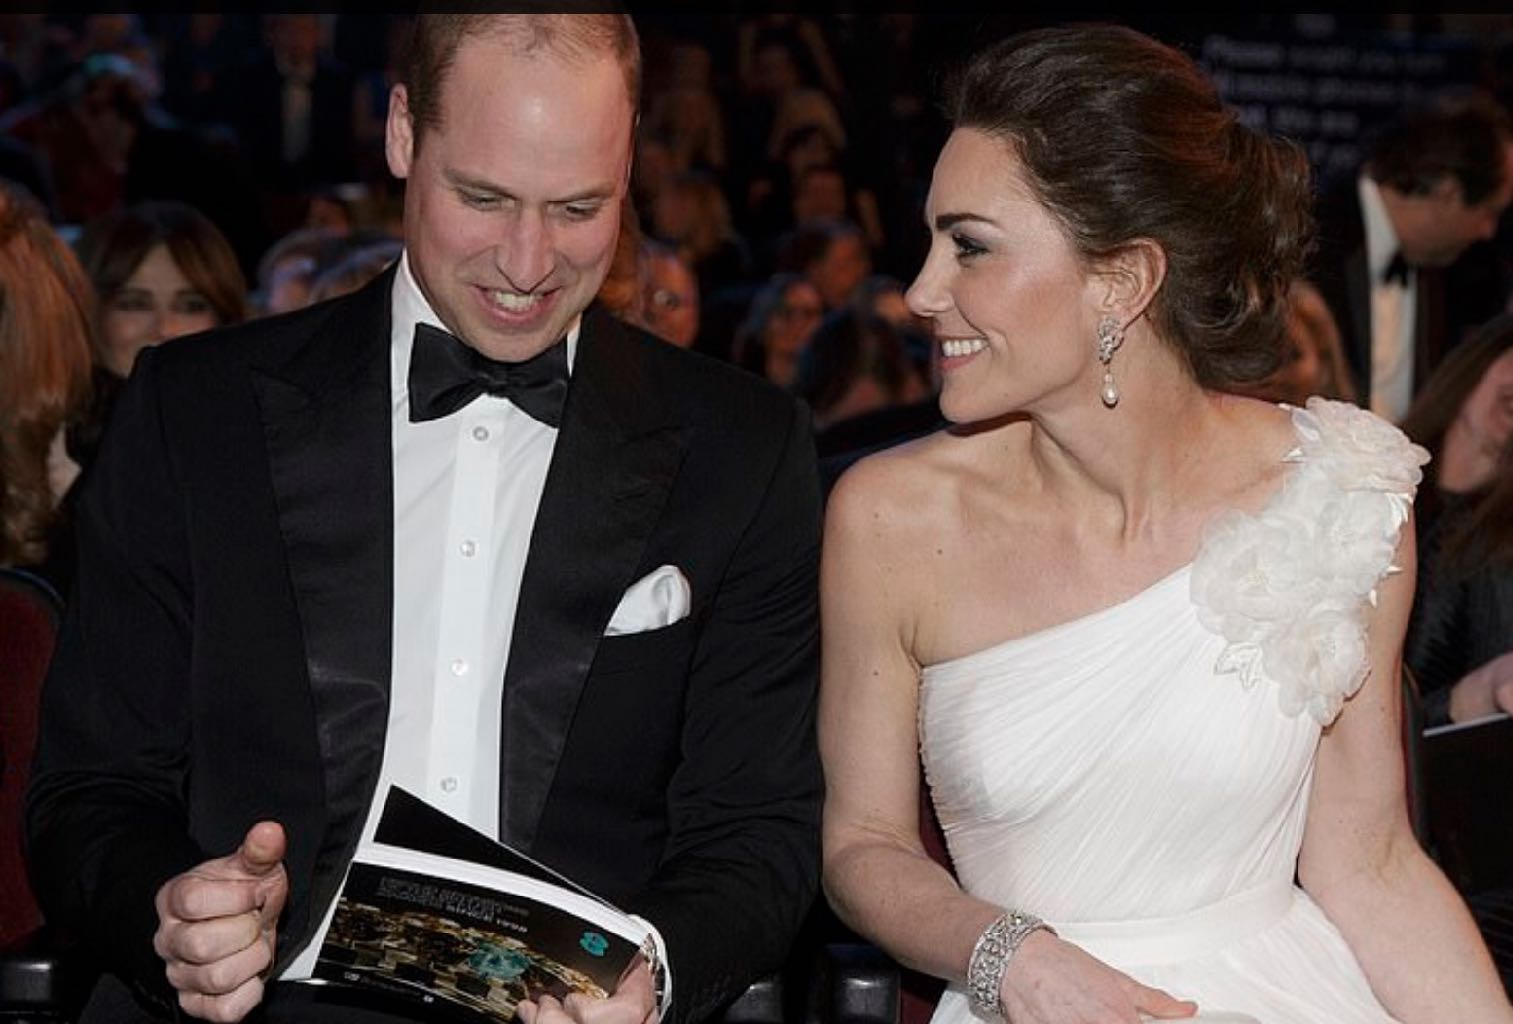 Prince William with Kate Middleton who is wearing Princess Diana's pearl and diamond earrings and a diamond bracelet from the Queen's collection with an Alexander McQueen dress. Photo via